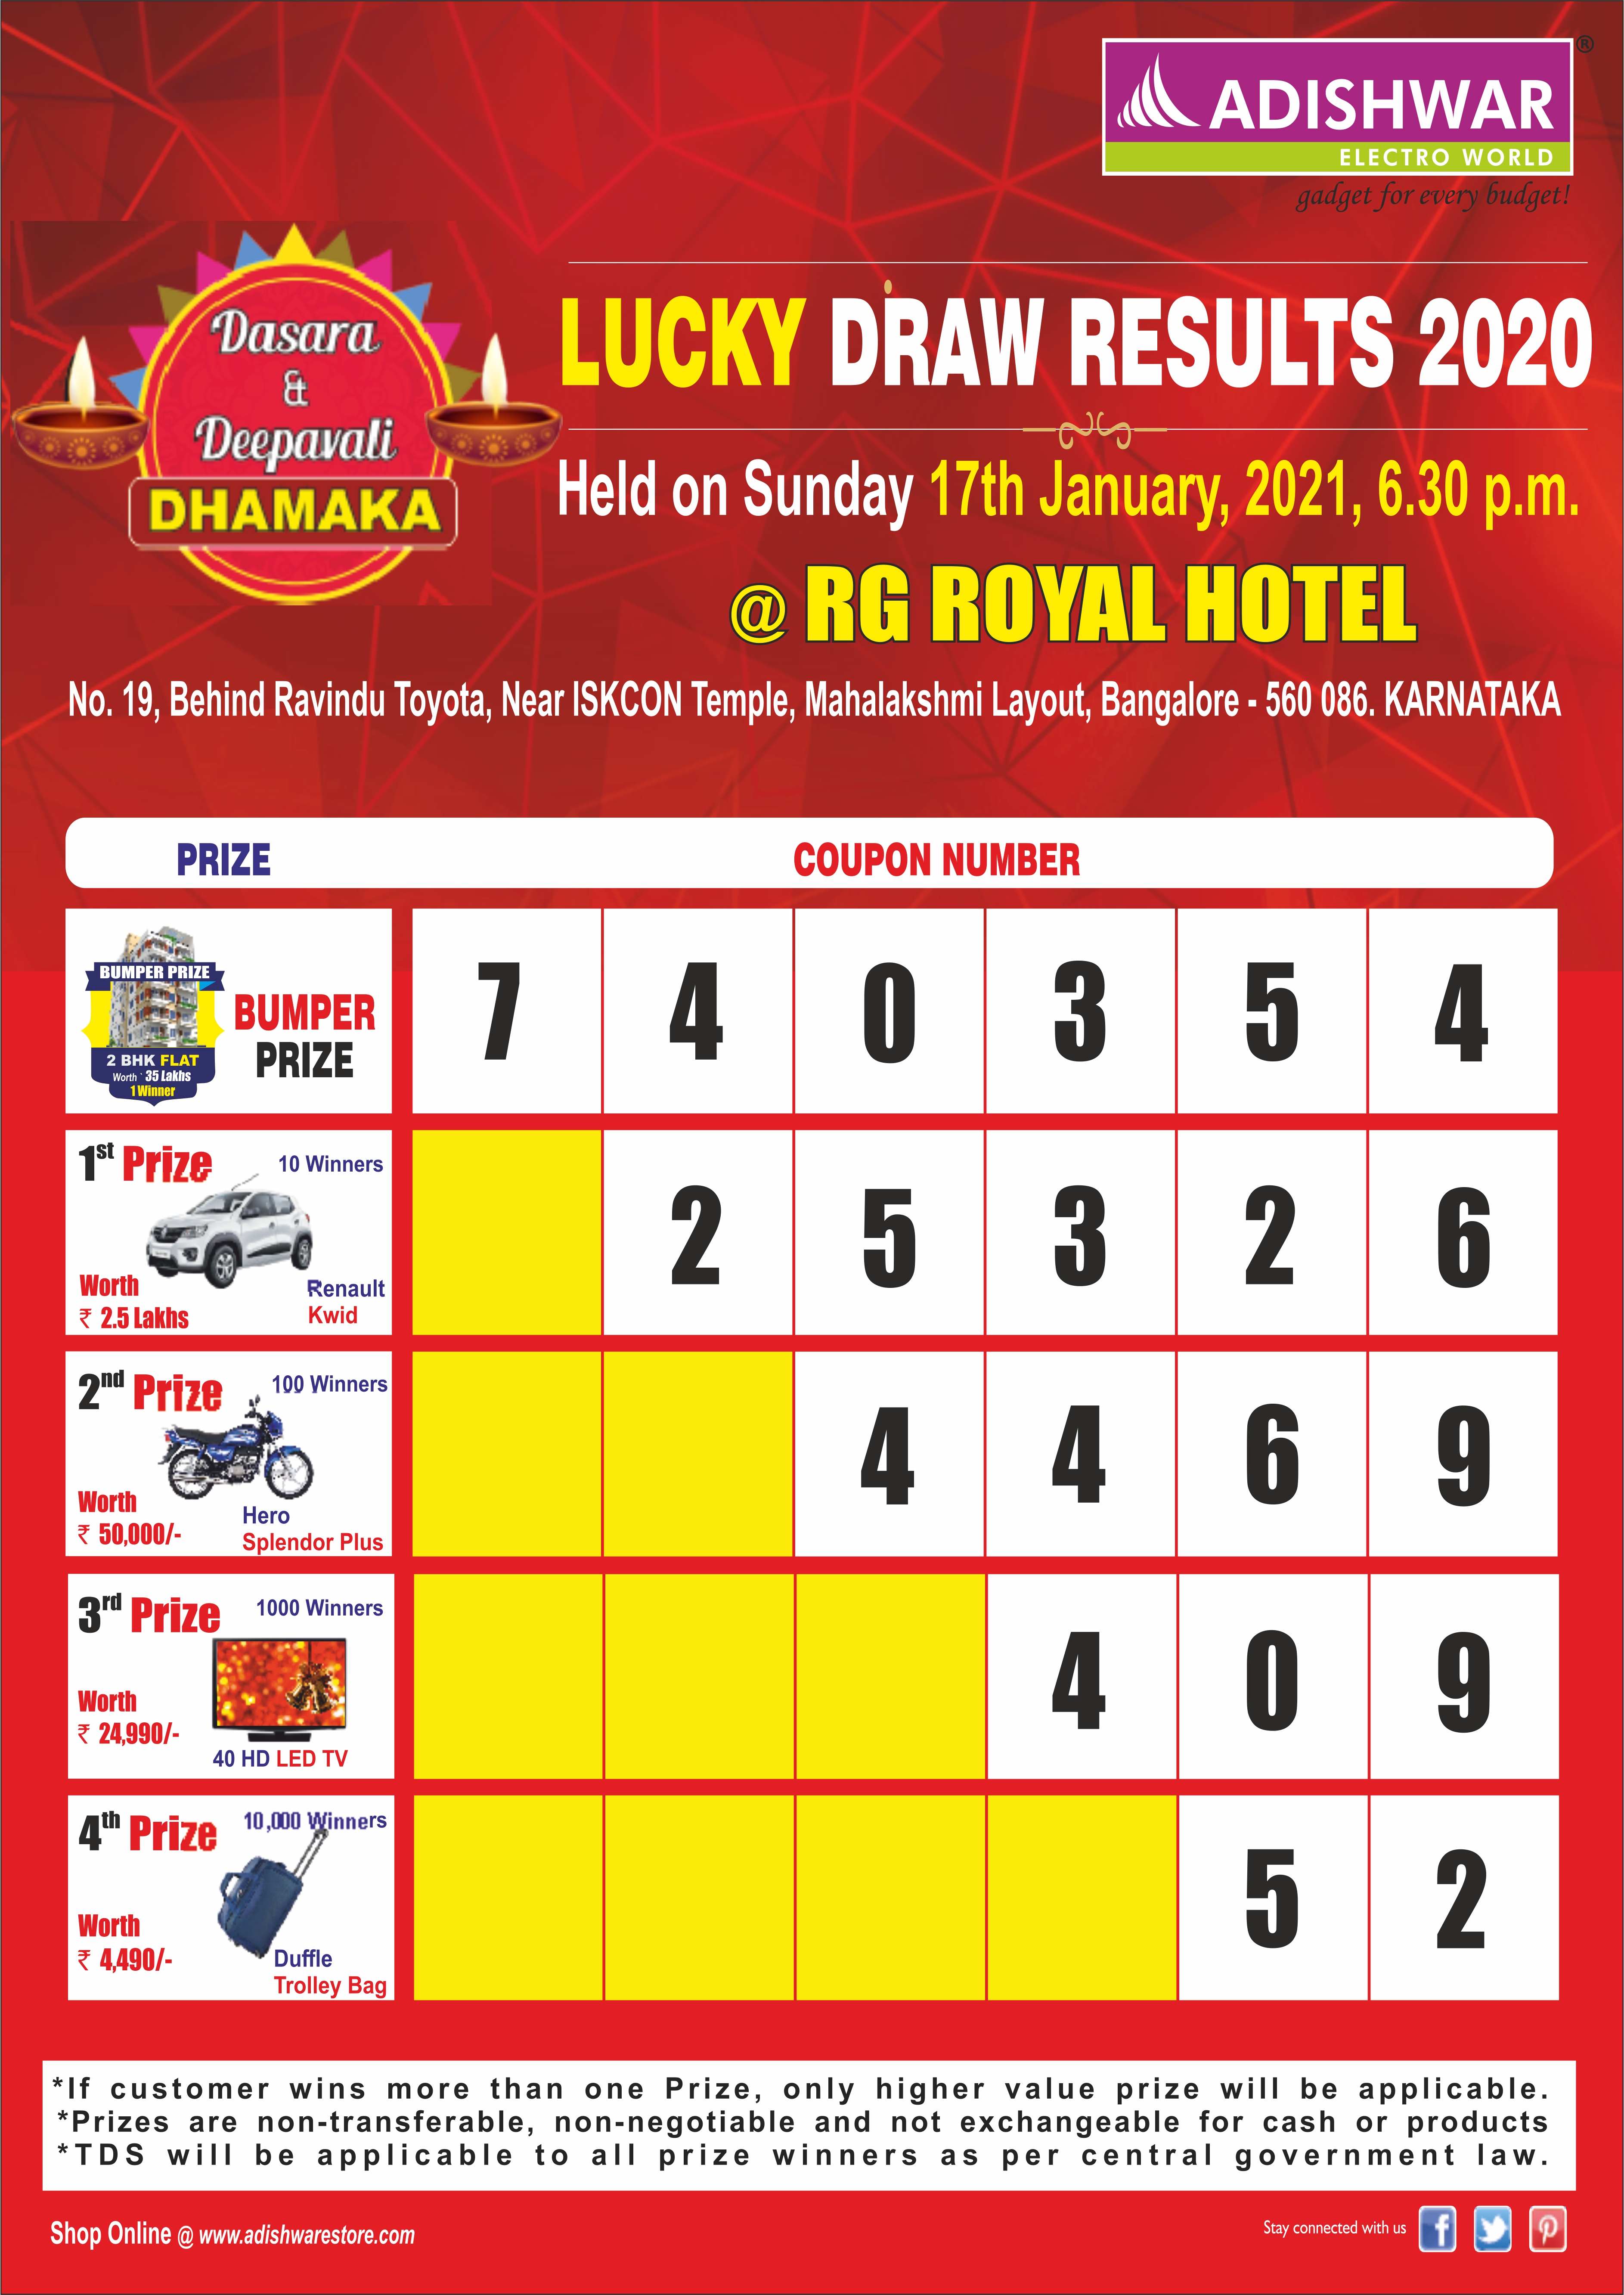 LUCKY DRAW RESULTS 2020